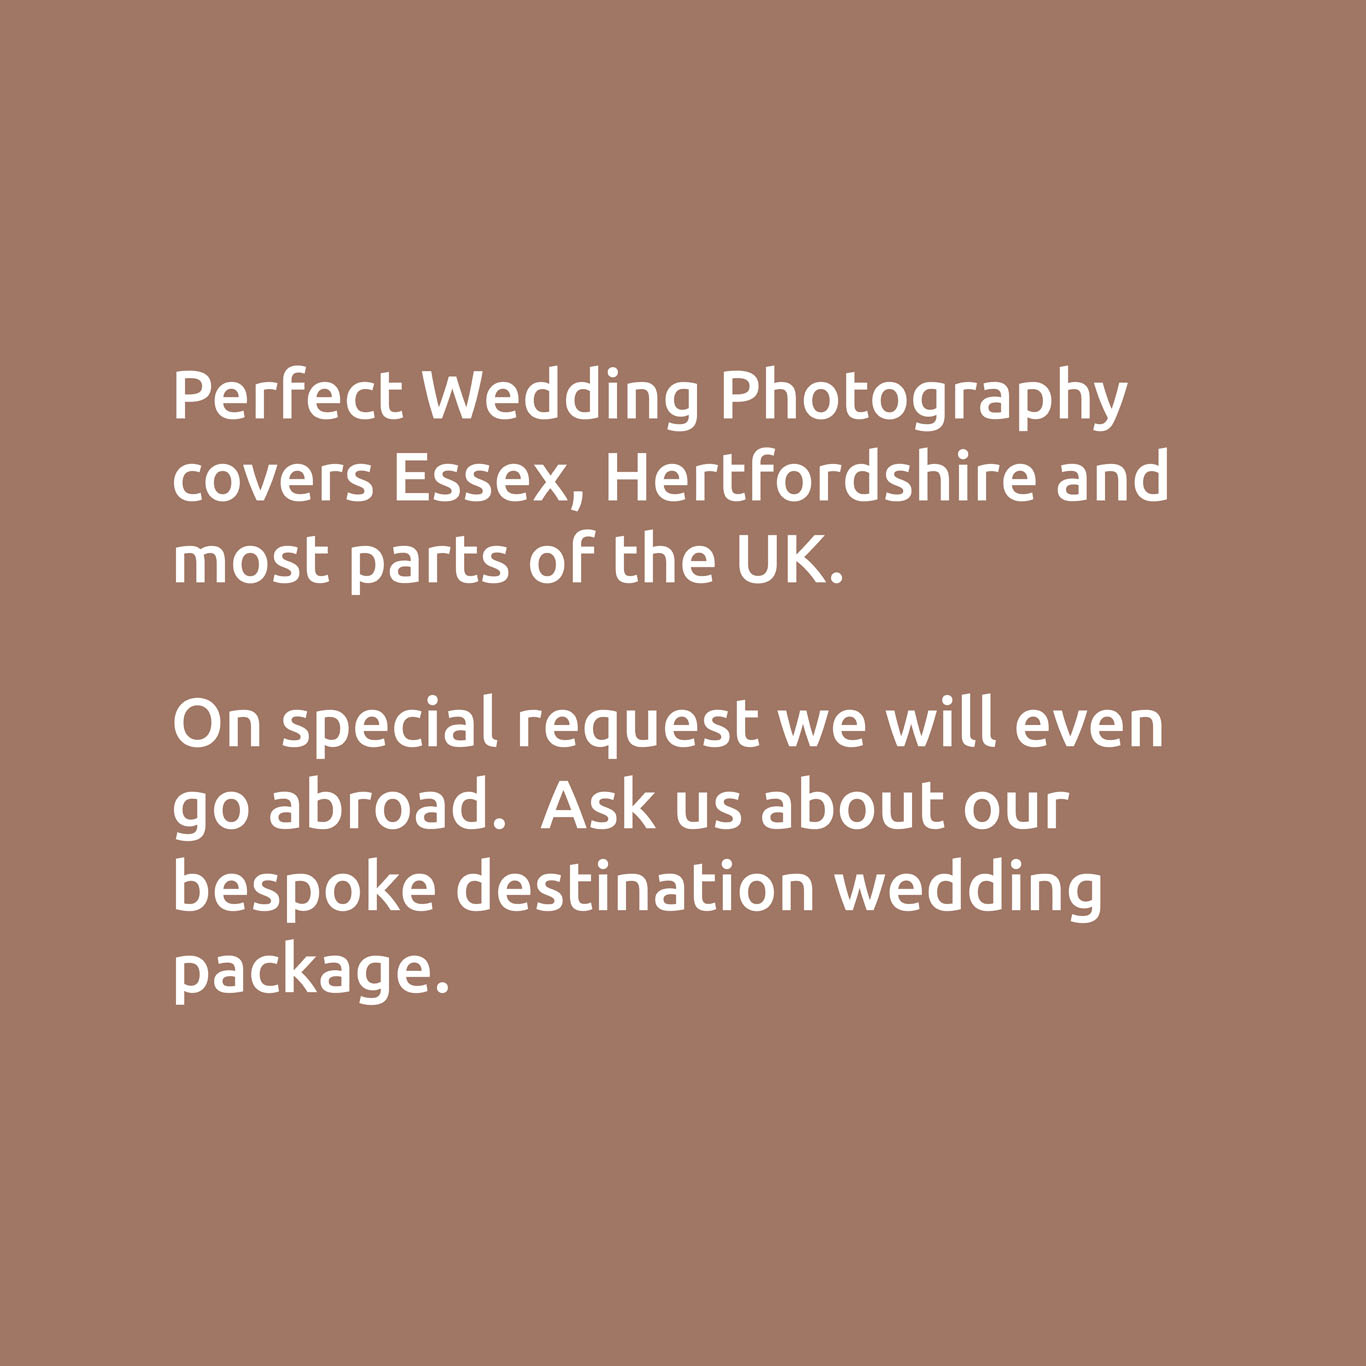 Perfect Wedding Photography covers Essex, Hertfordshire and most parts of the UK.  On special request we will even go abroad.